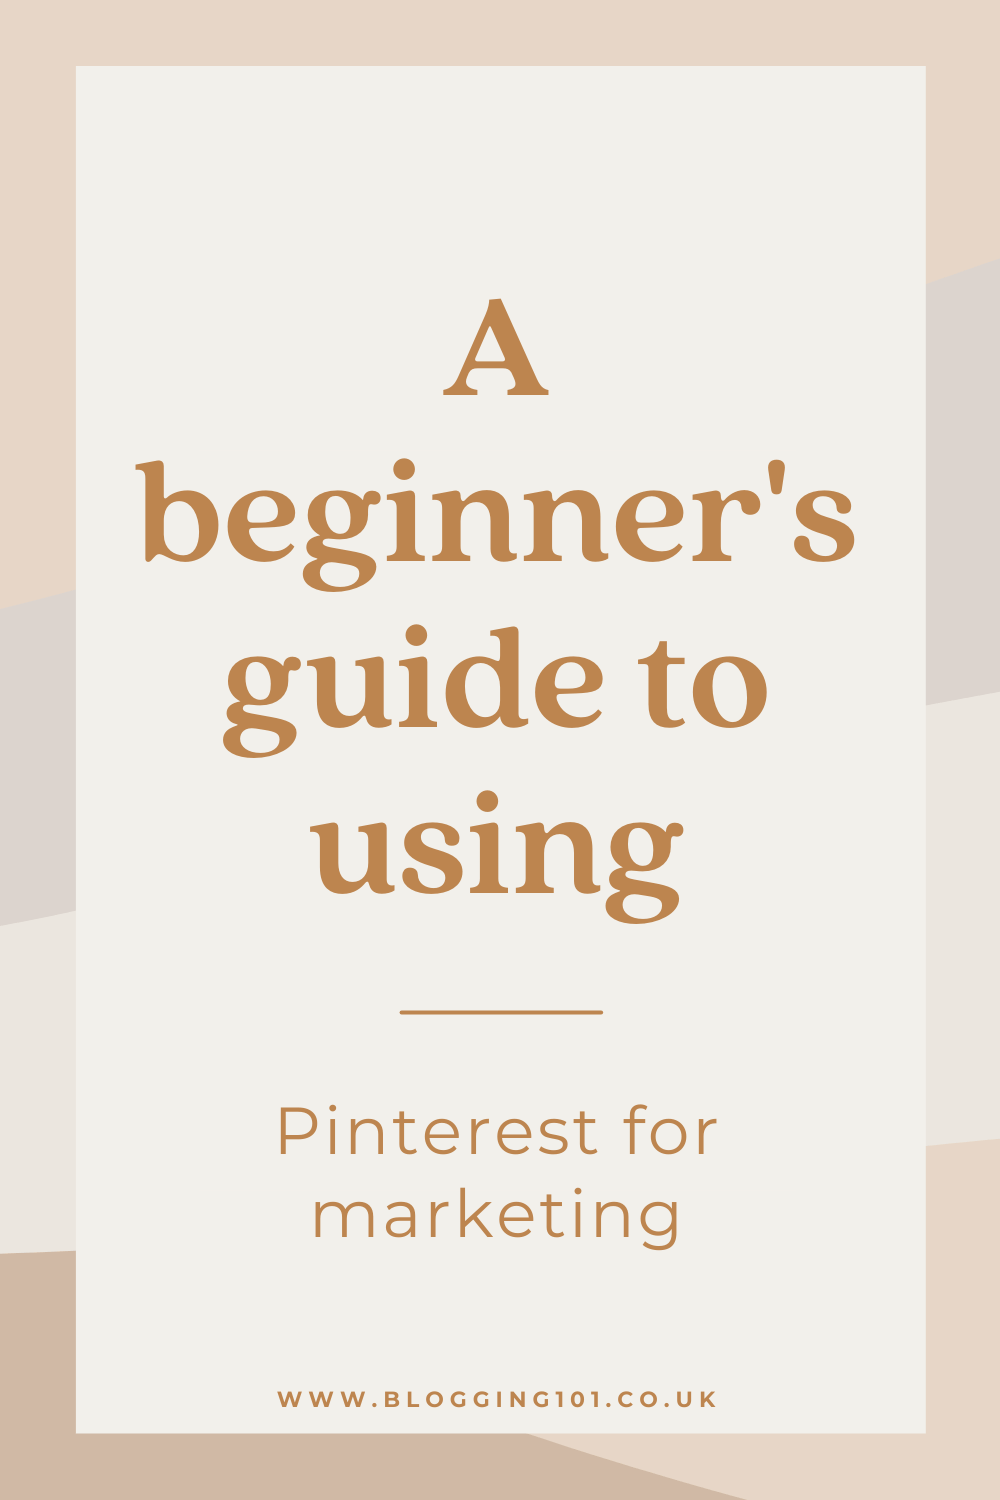 A beginner's guide to using Pinterest for marketing